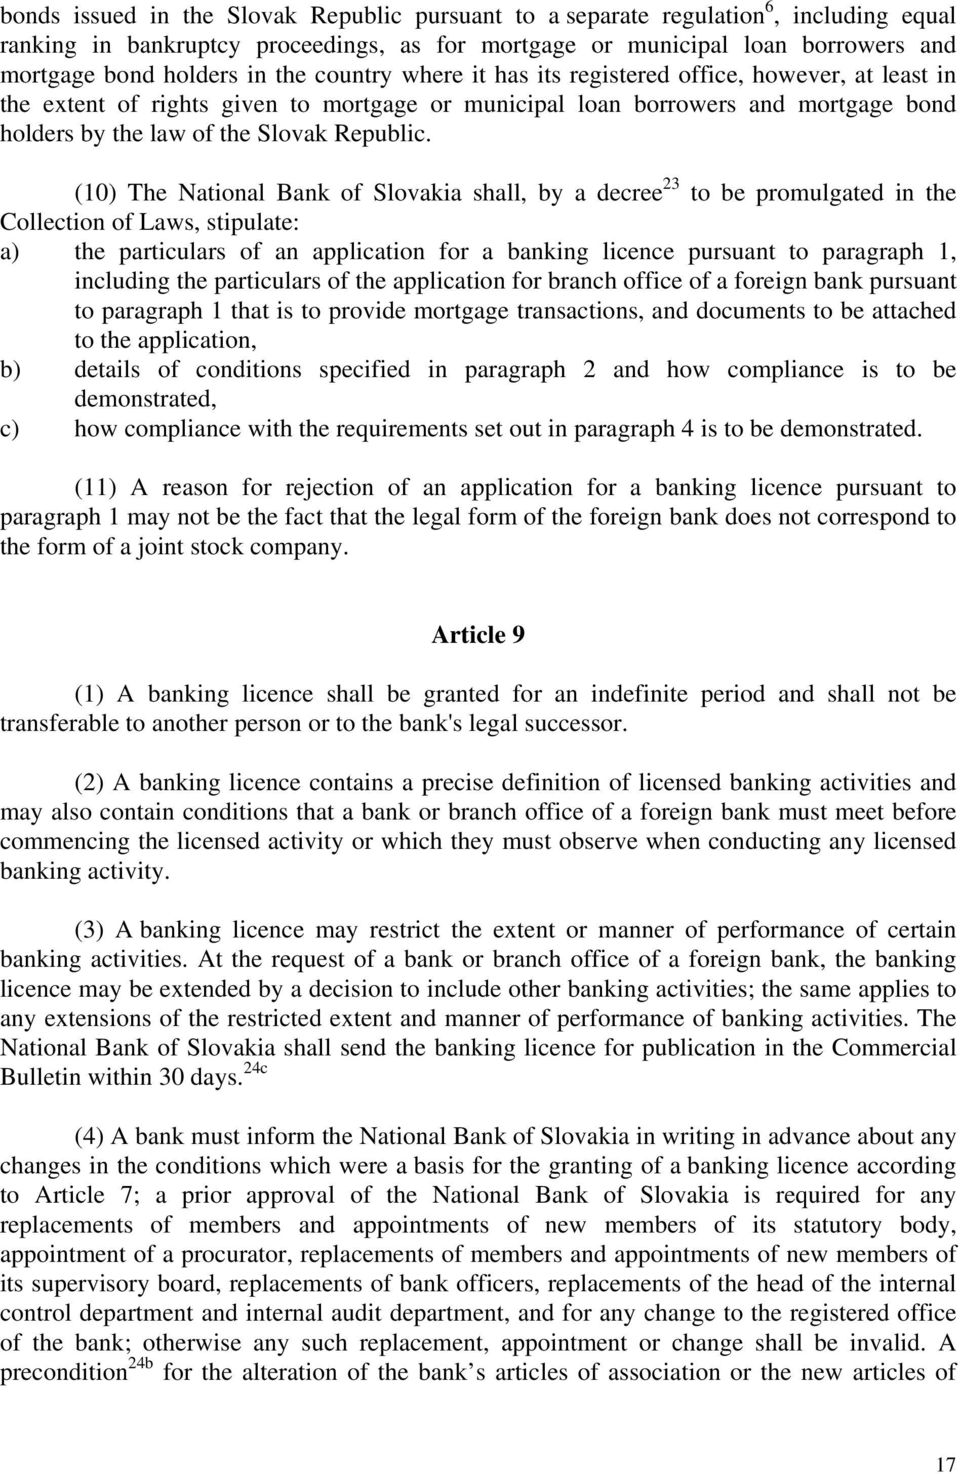 (10) The National Bank of Slovakia shall, by a decree 23 to be promulgated in the Collection of Laws, stipulate: a) the particulars of an application for a banking licence pursuant to paragraph 1,